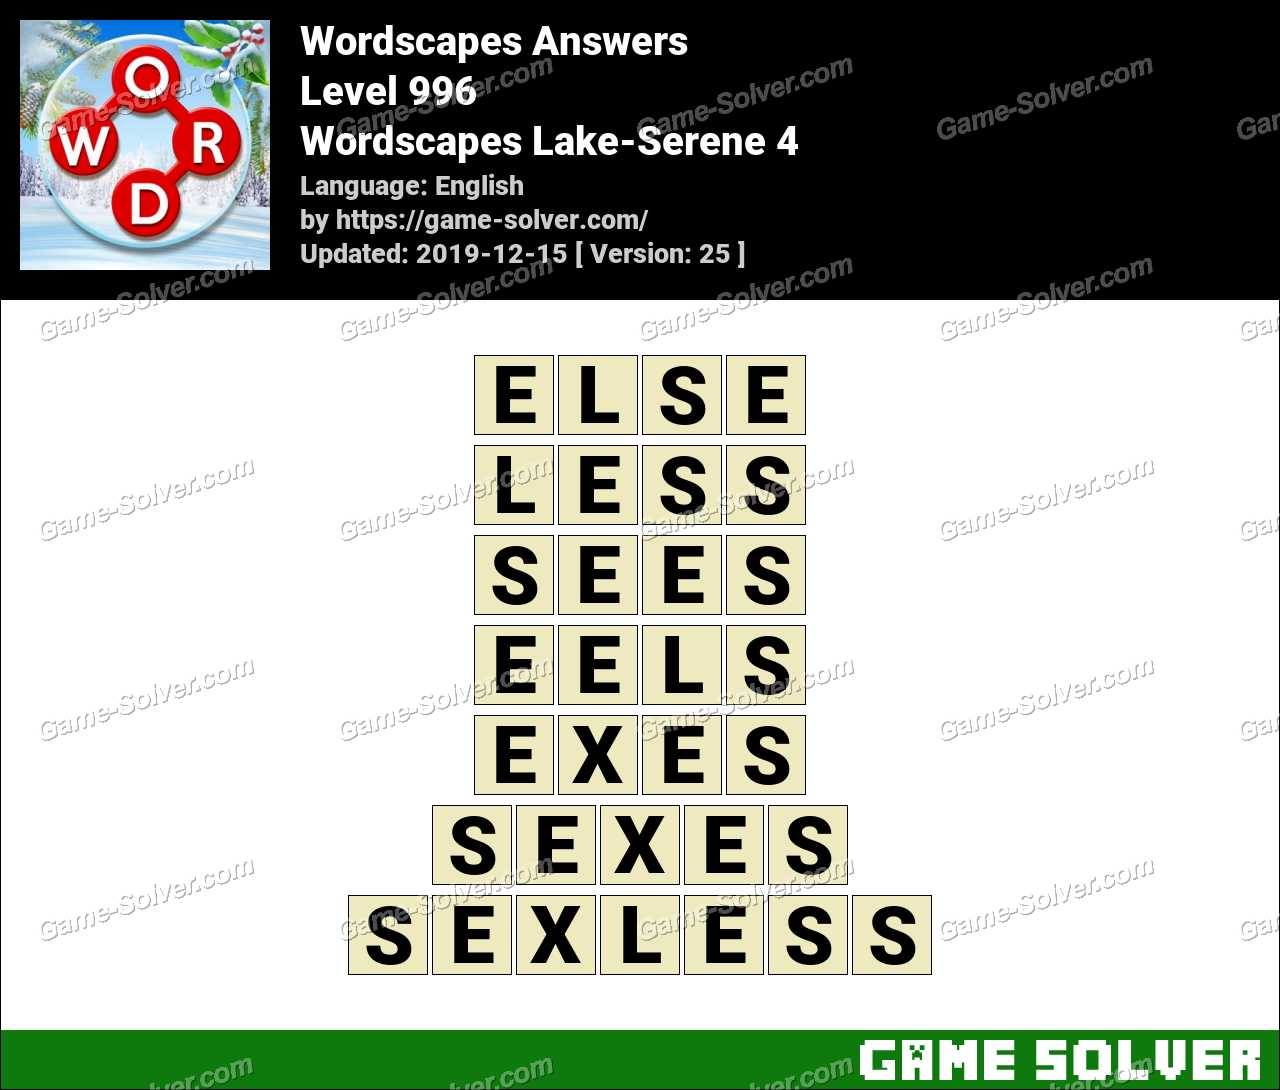 Wordscapes Lake-Serene 4 Answers